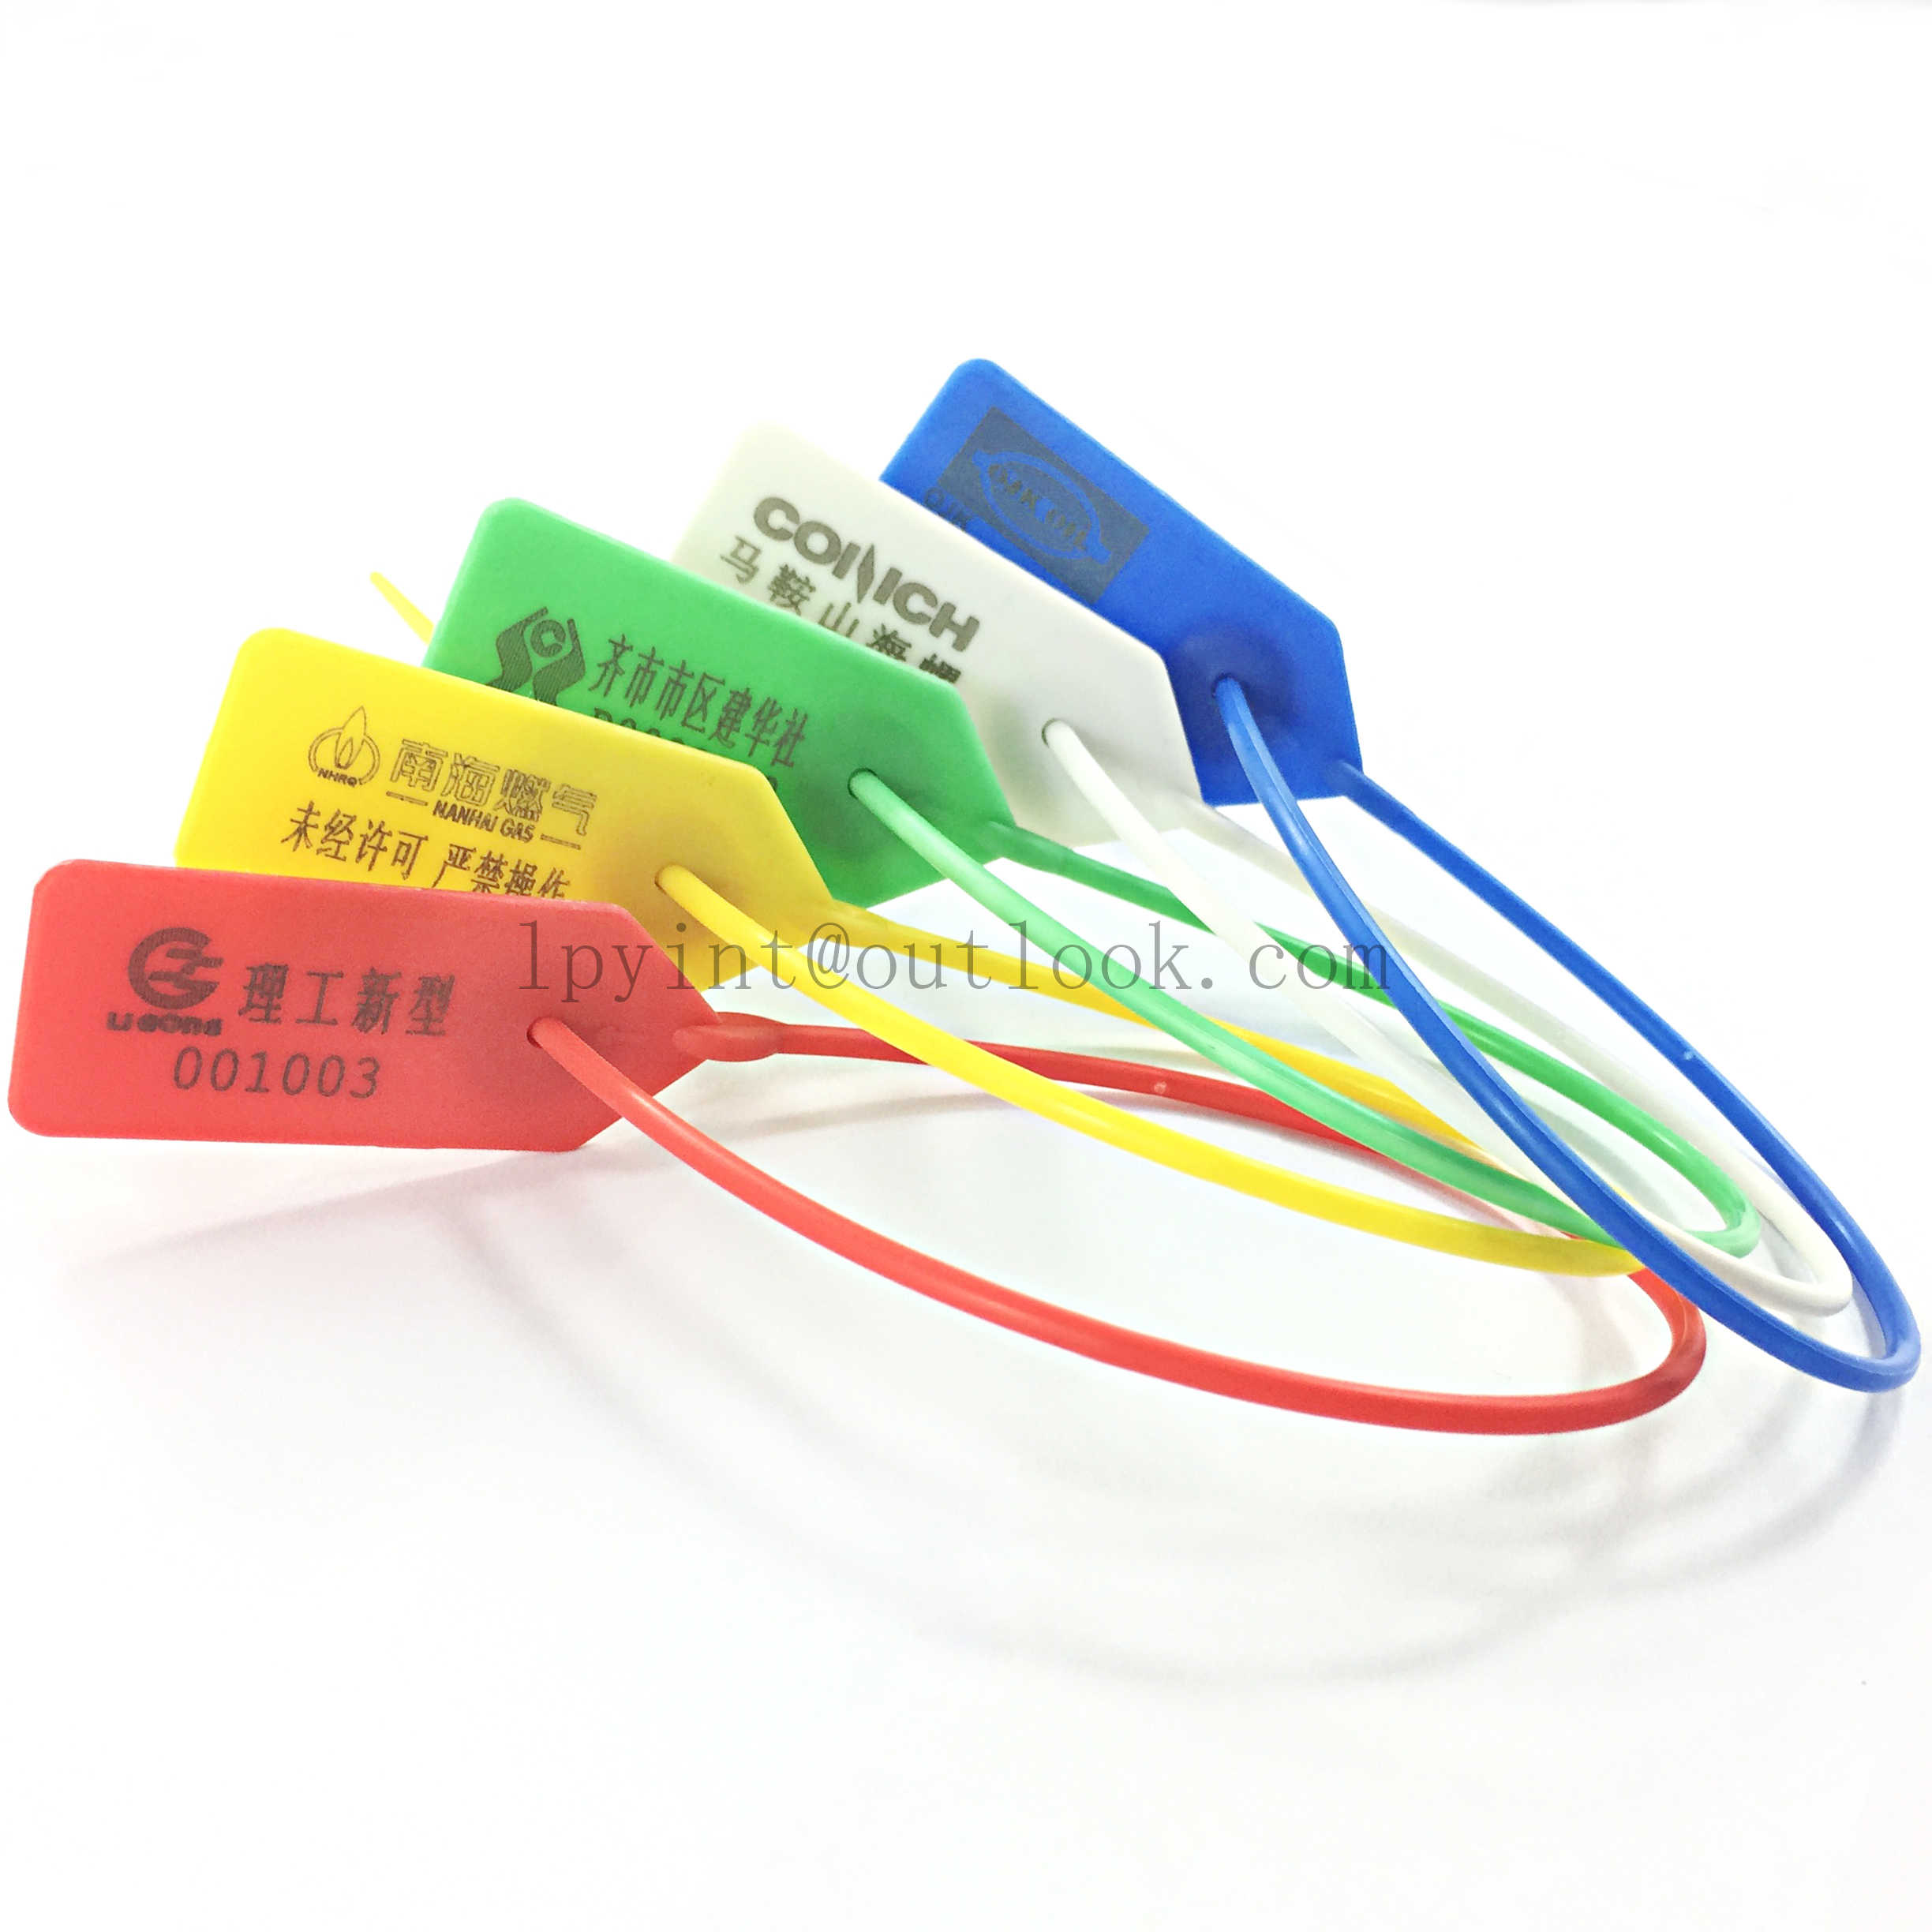 Plastic Security Ties